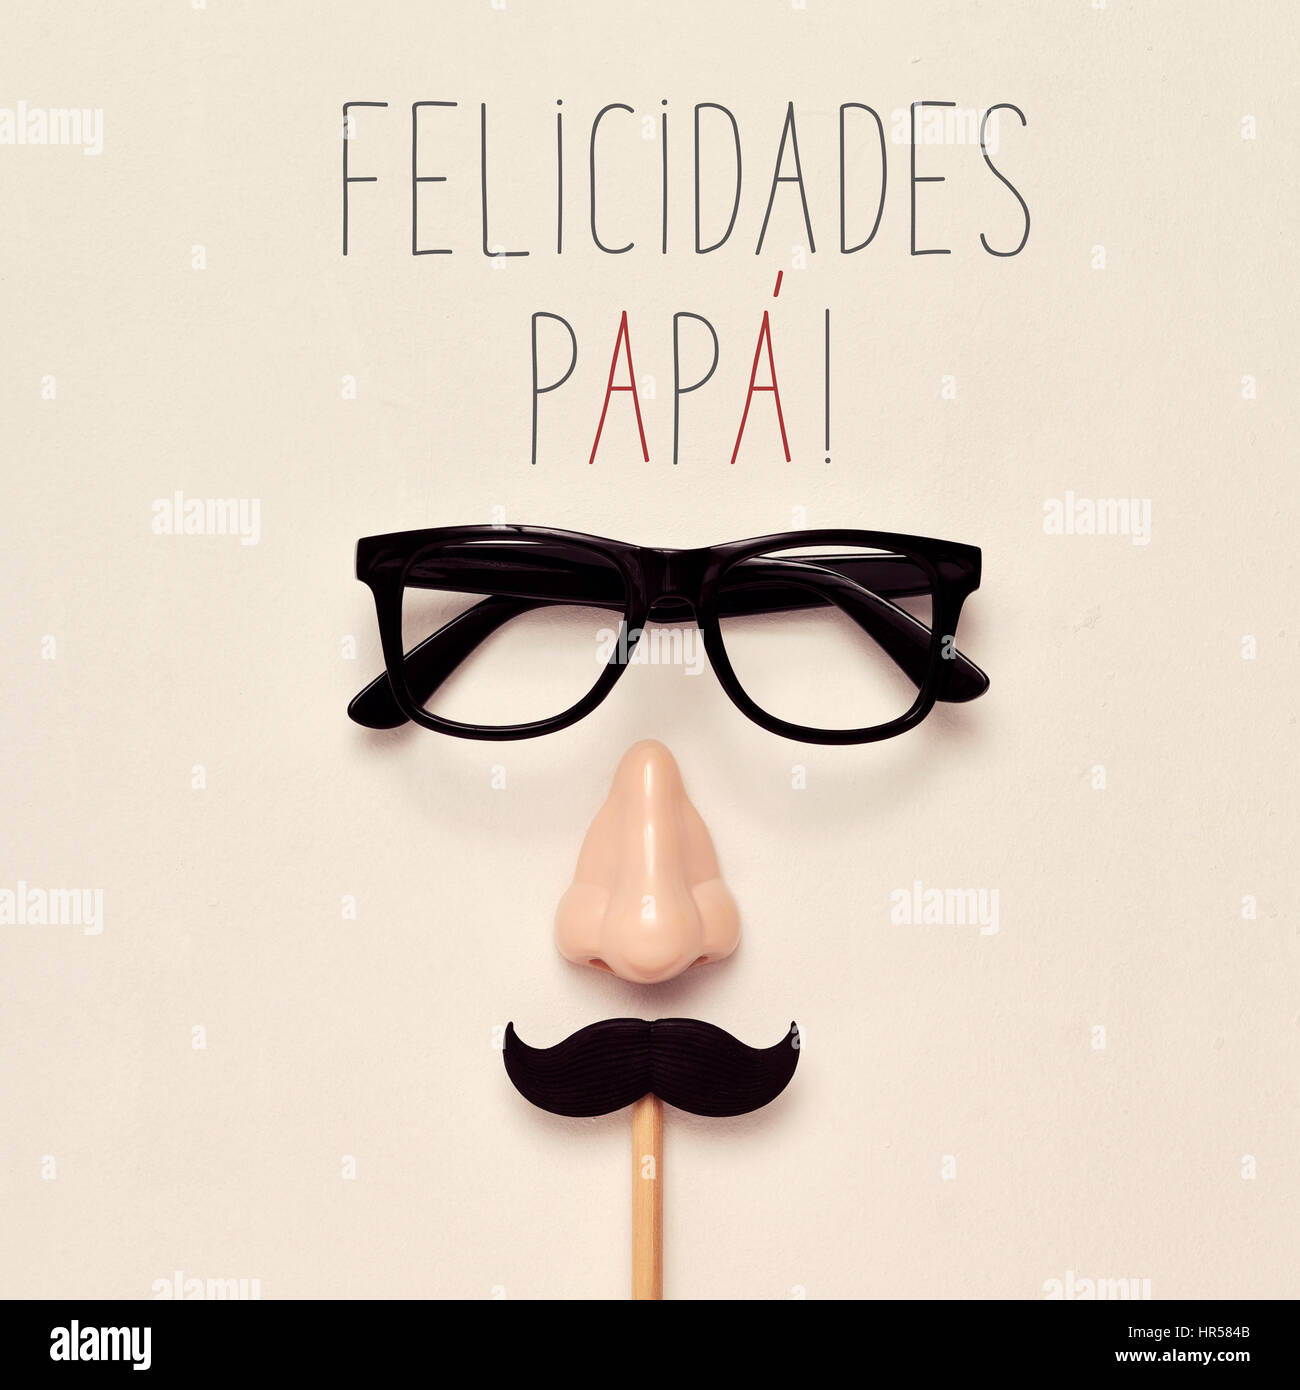 the text felicidades papa, congratulations daddy in spanish, a pair of black plastic-rimmed eyeglasses, a nose and - Stock Image